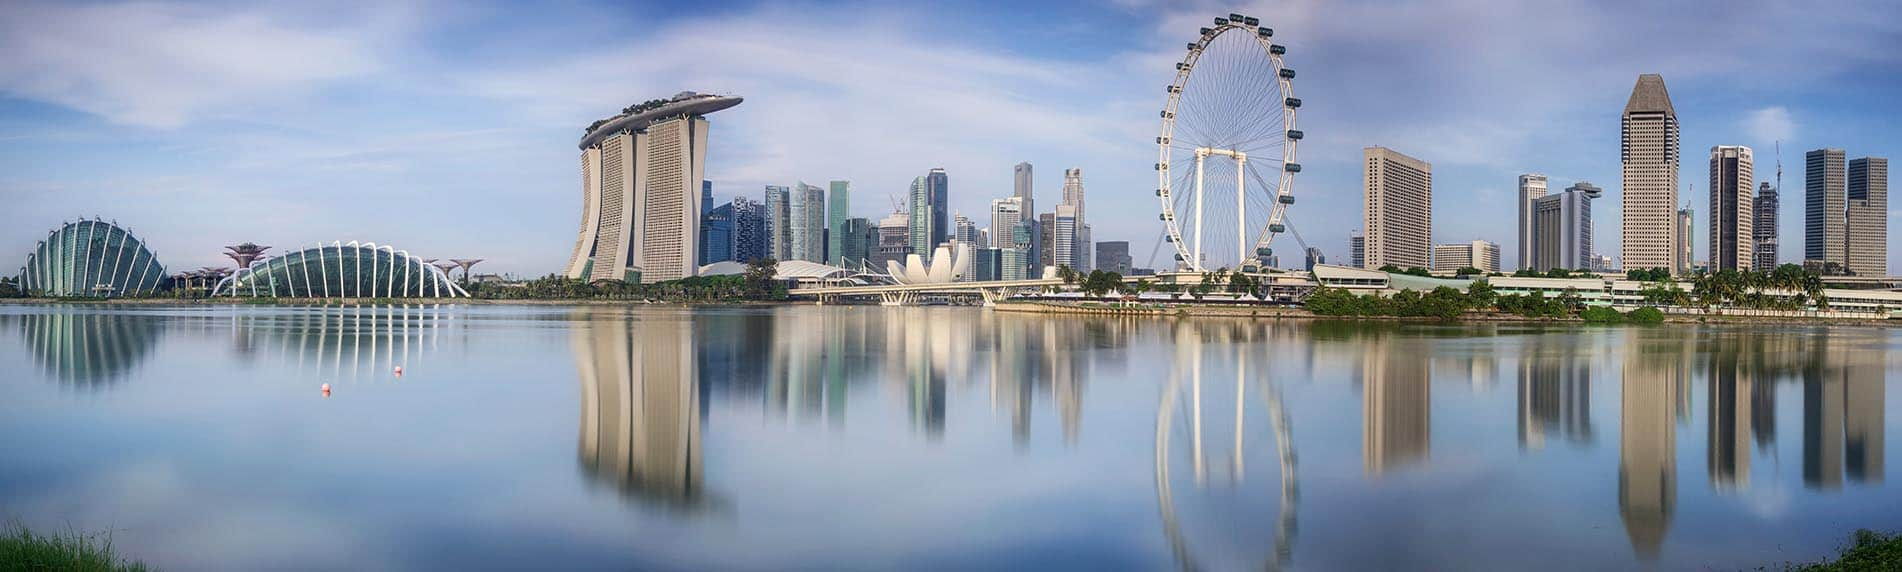 Singapore Landscapes 5 Nights